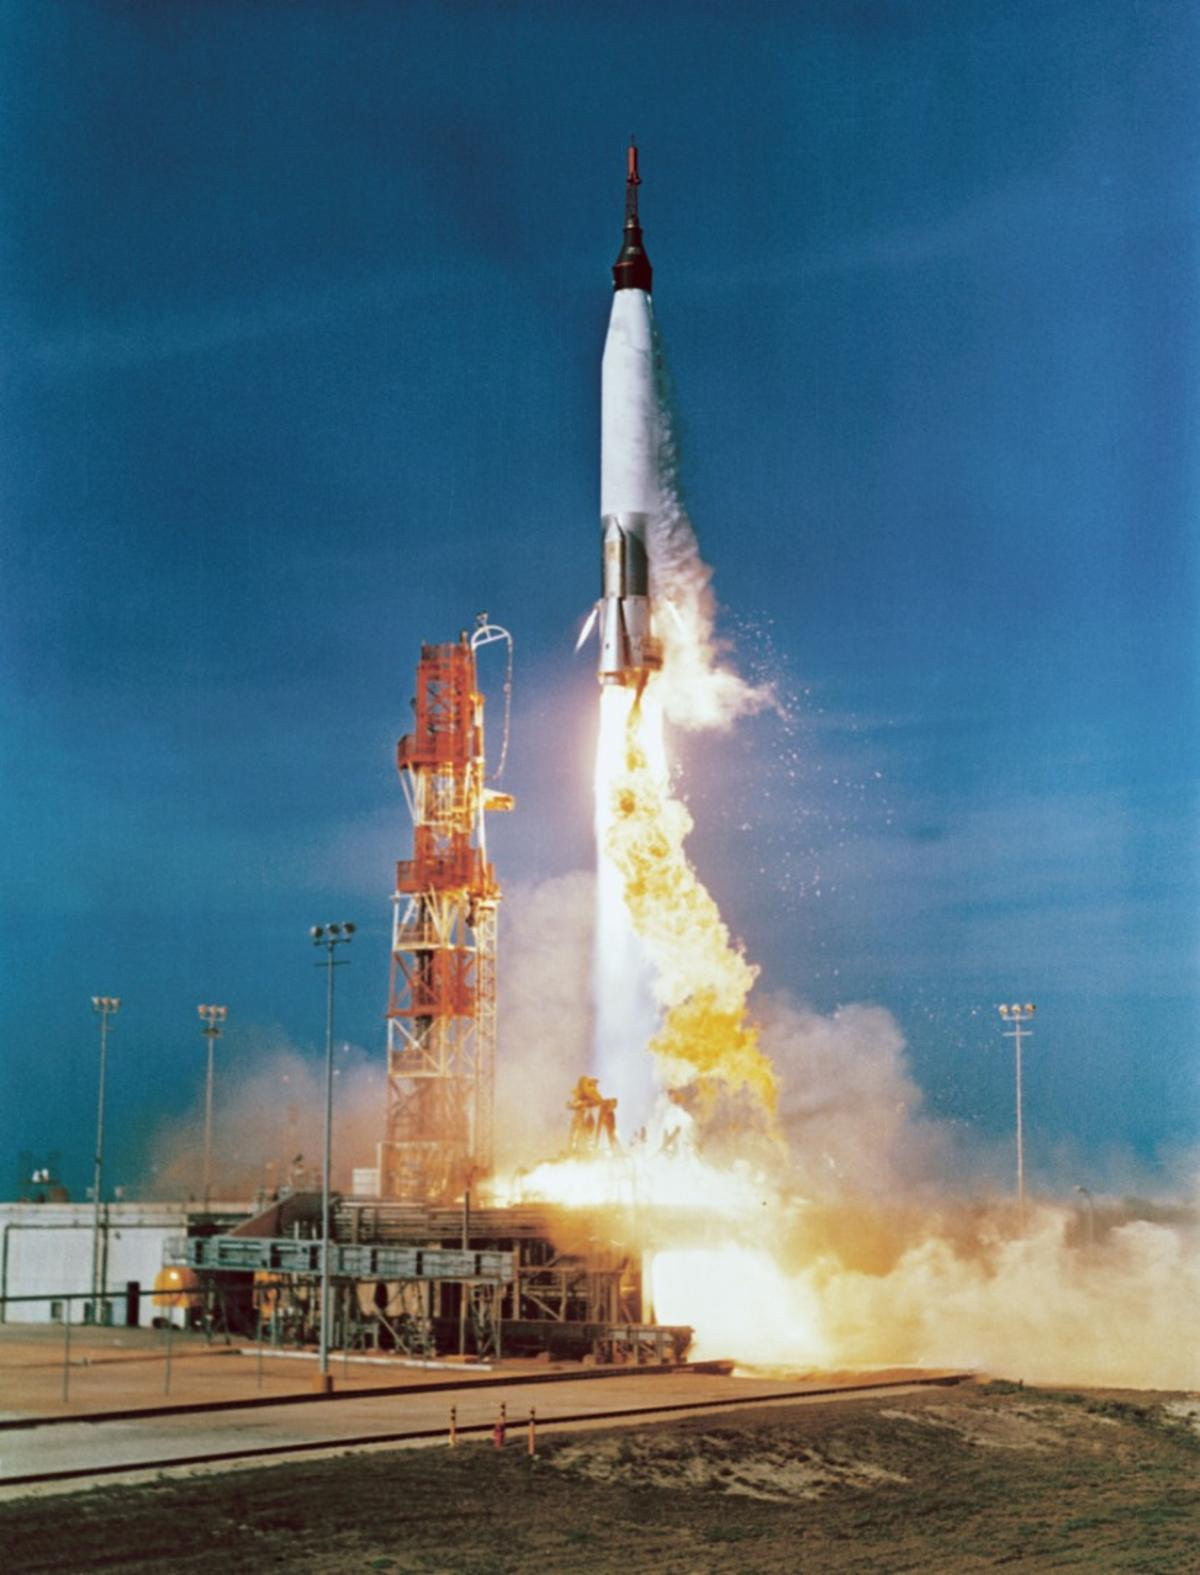 Unlike this Atlas rocket launching the Mercury-Atlas 2 mission in 1961, the RDE can act both as a rocket and an air-breathing jet